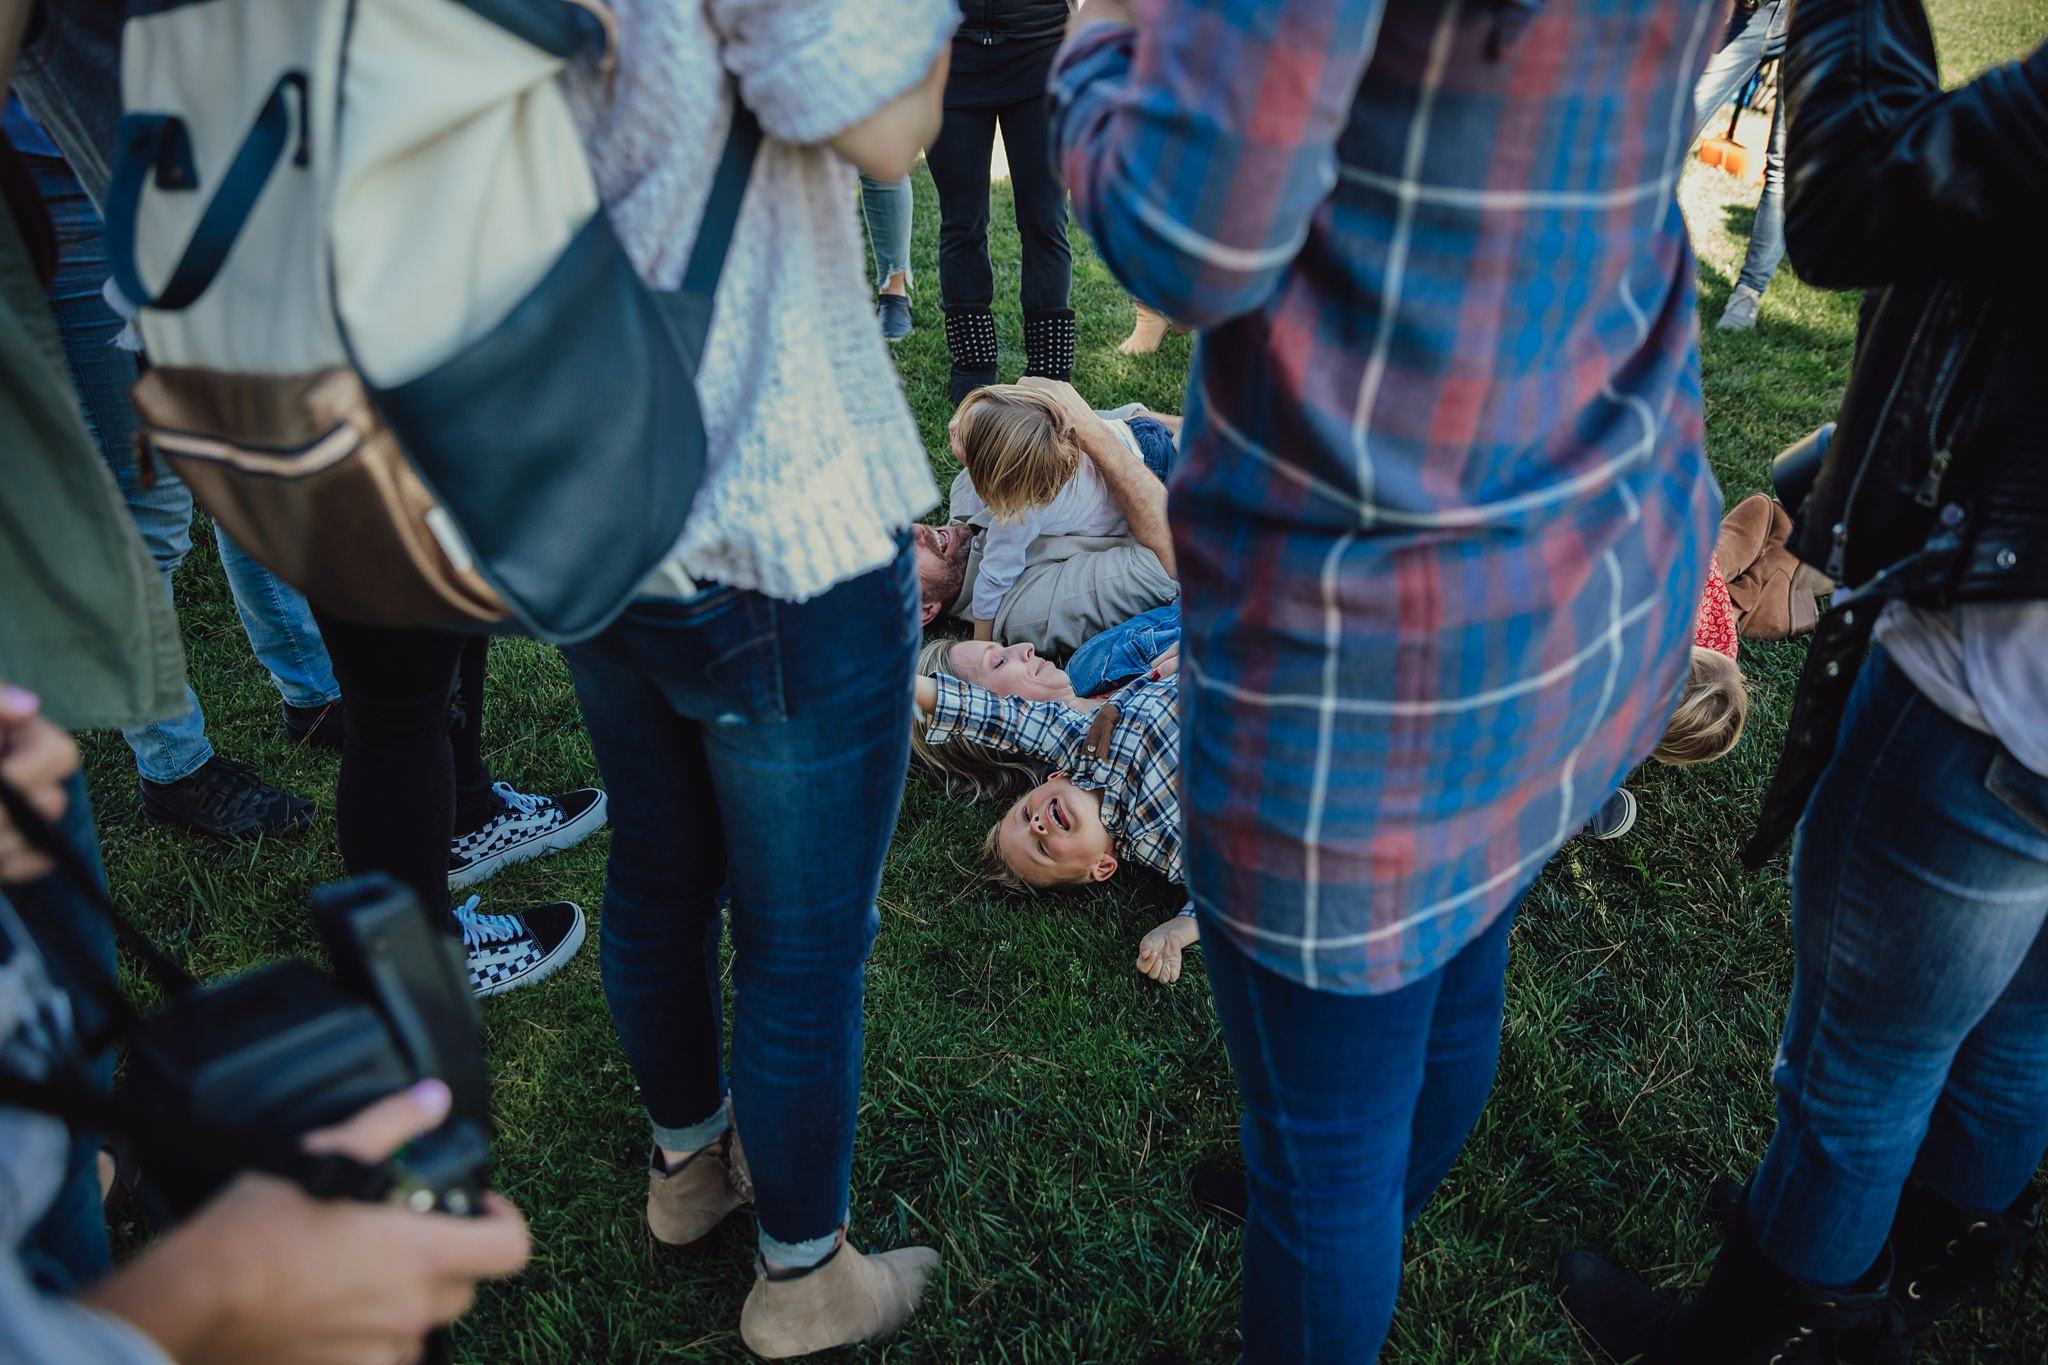 photographers crowd around family playing on grass | Whidbey Island family photographer